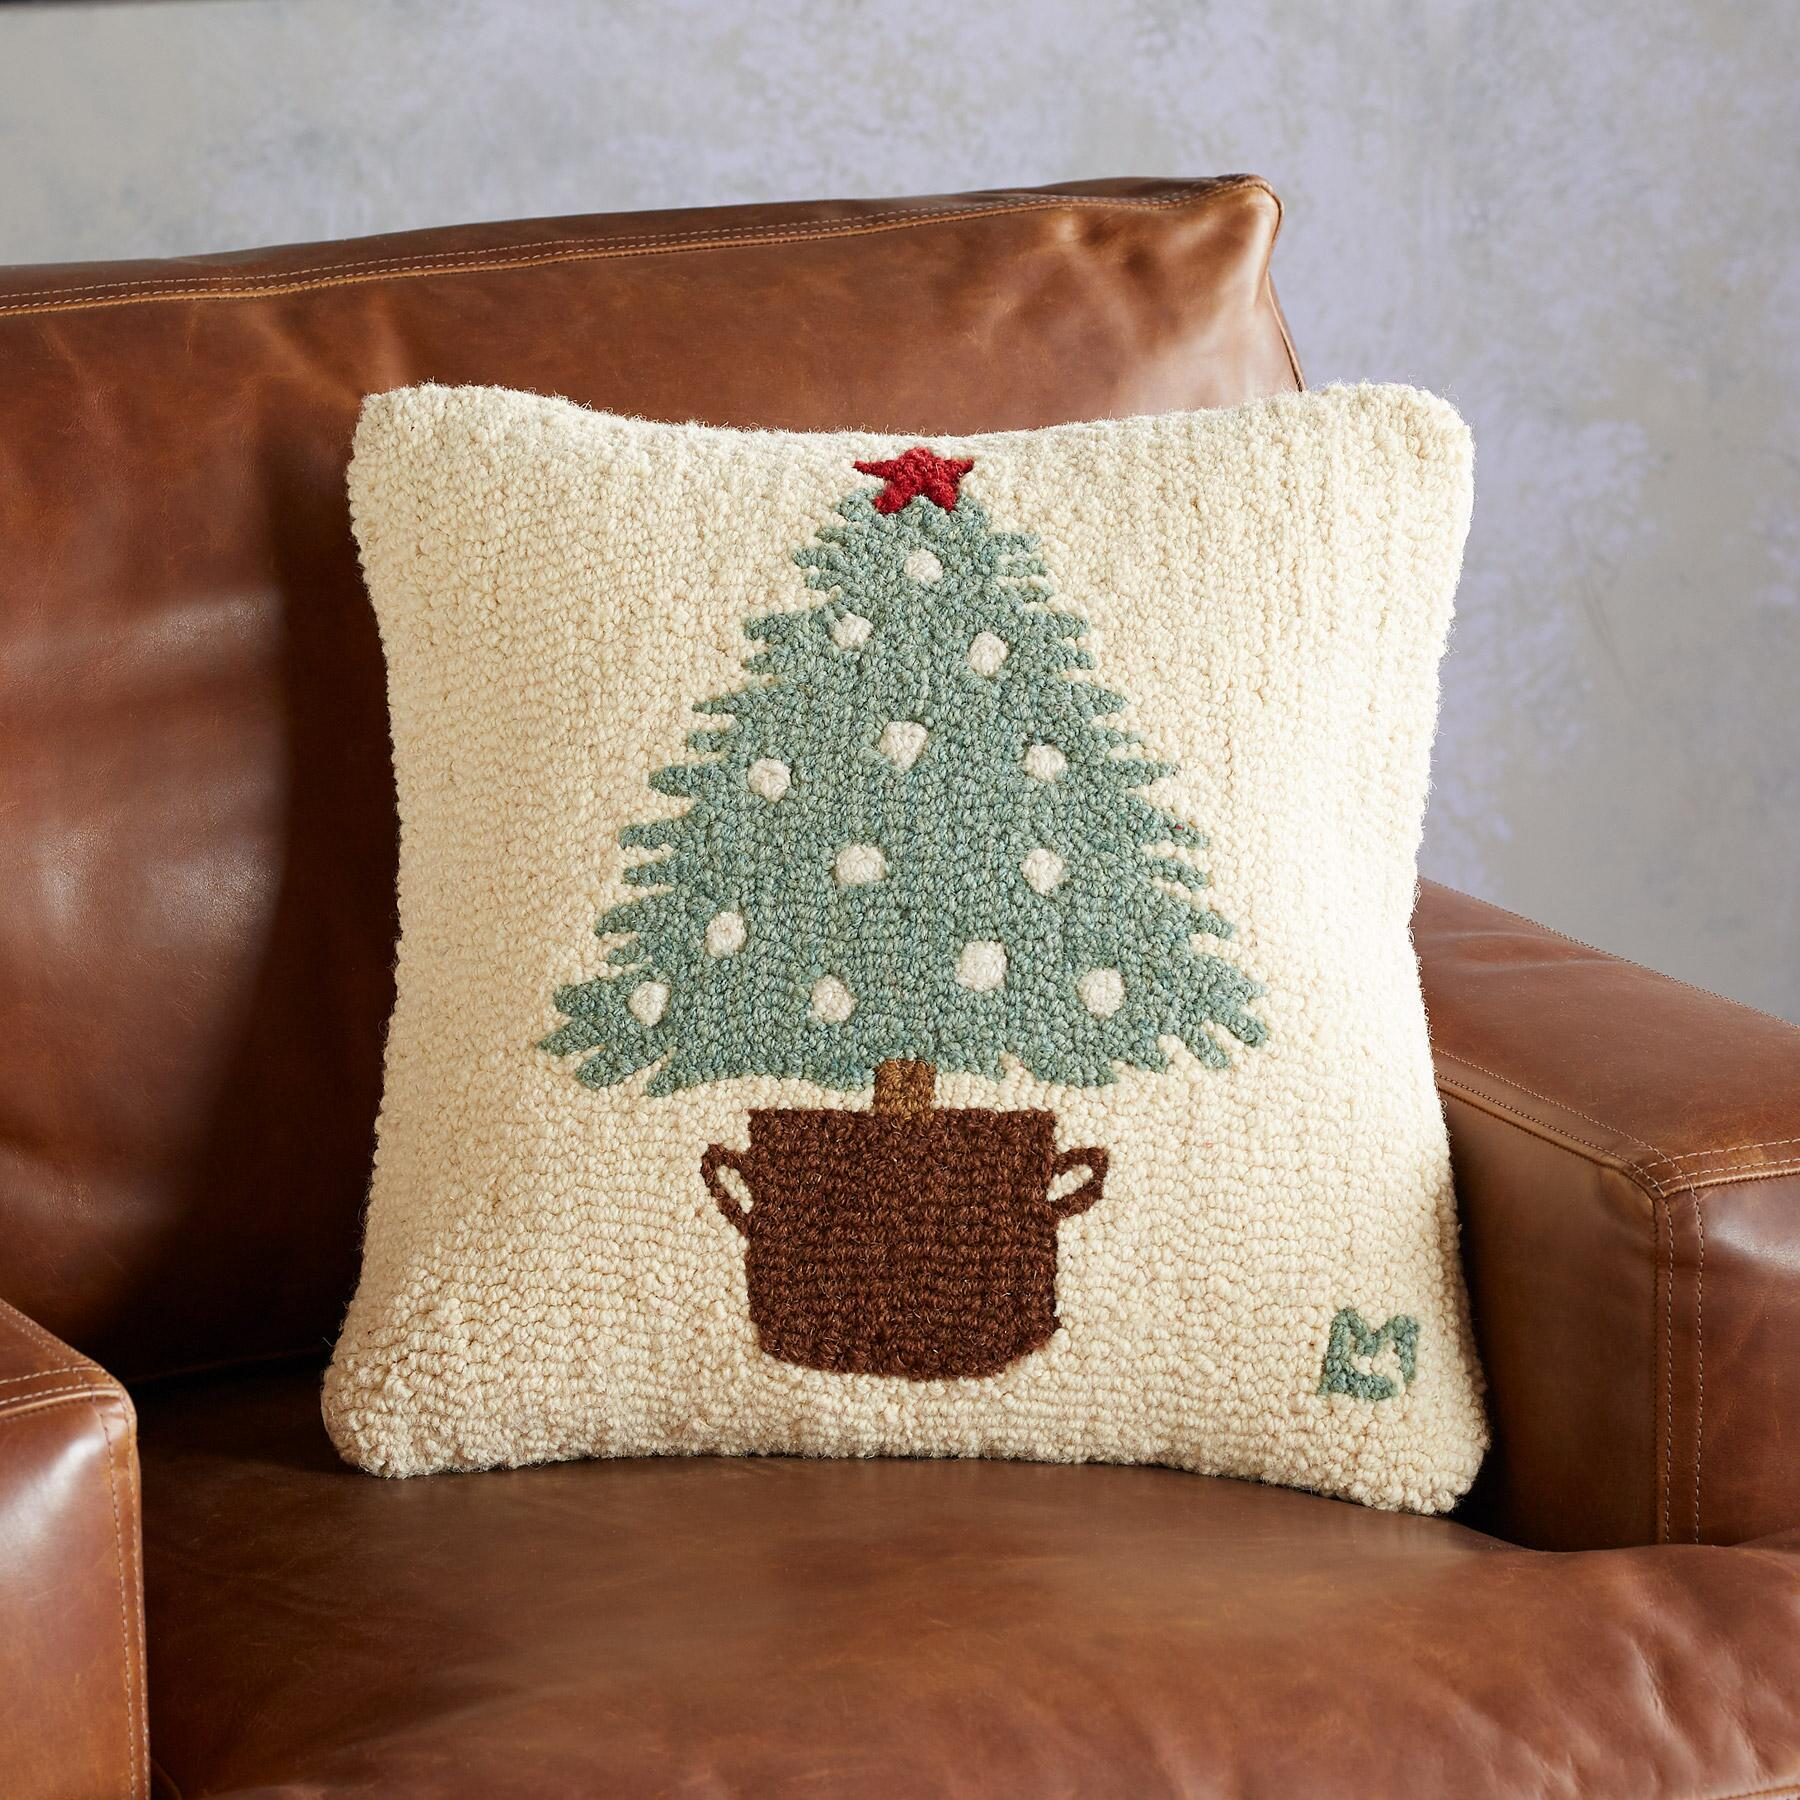 O Christmas tree embroidered pillow  - Sundance Catalog Home Decor + A Few of My Artisan Favorite Things!